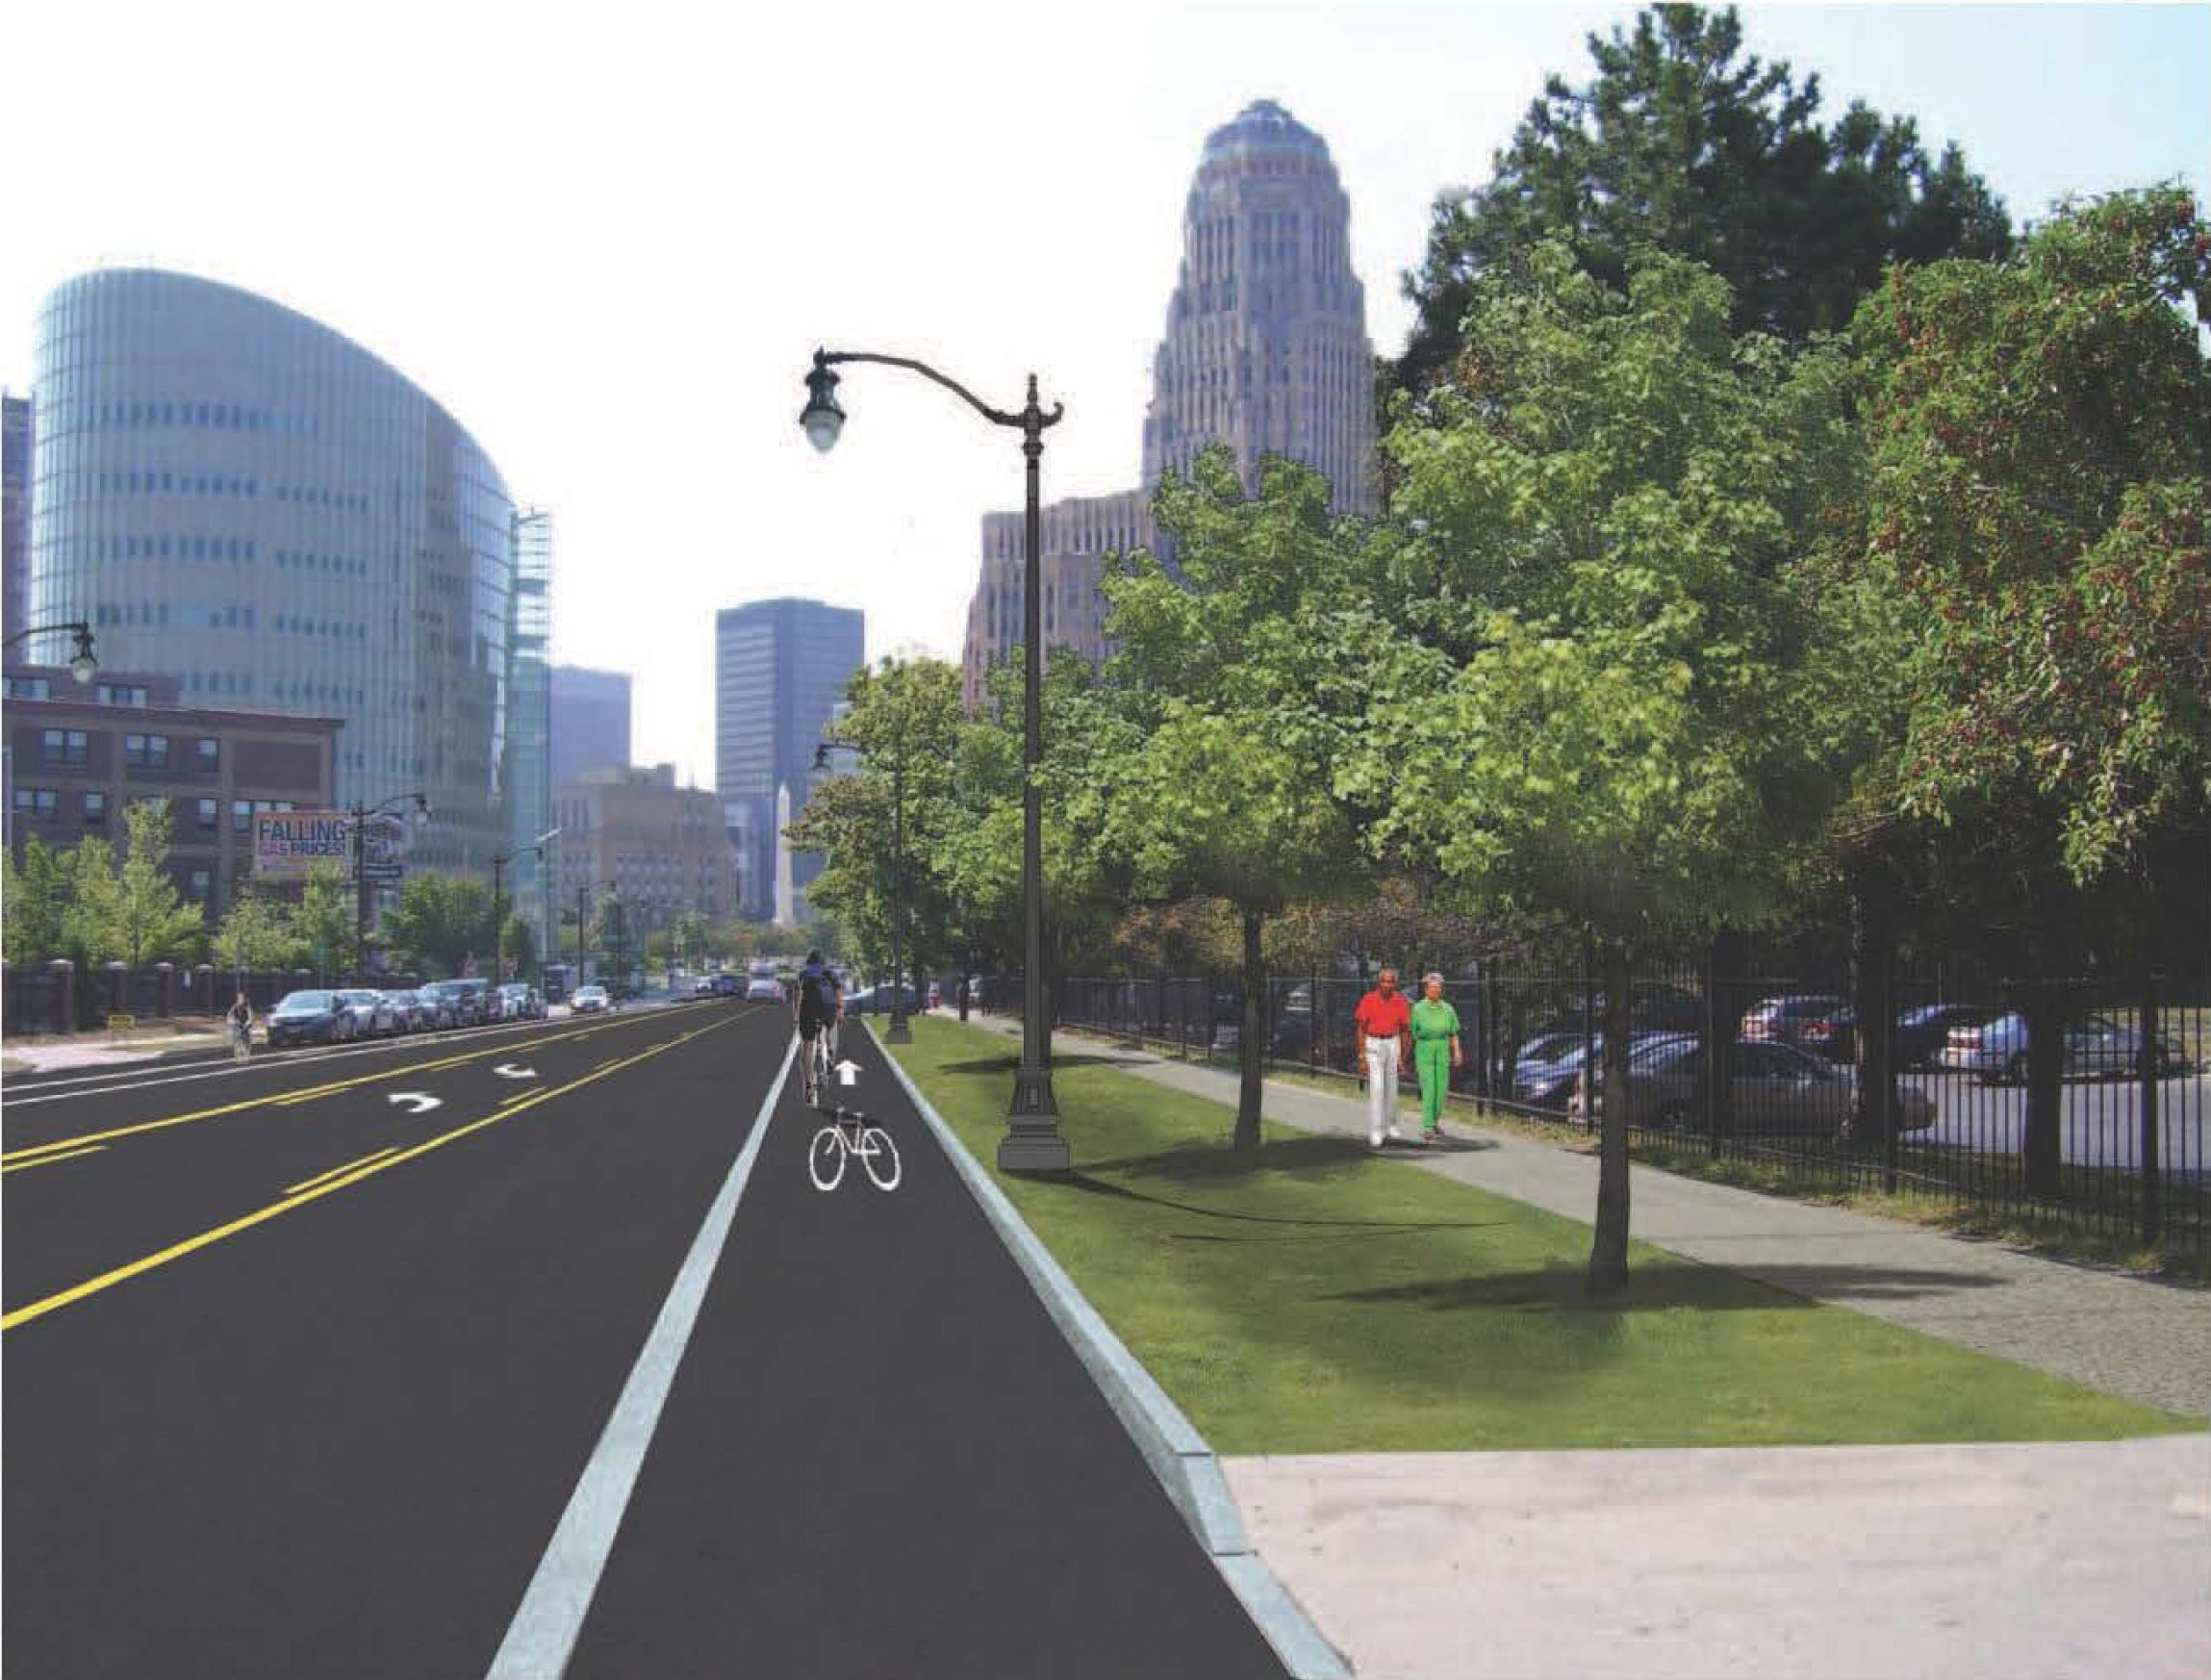 New sidewalks, repaved streets and bike lanes are proposed at West Huron Street facing northbound.